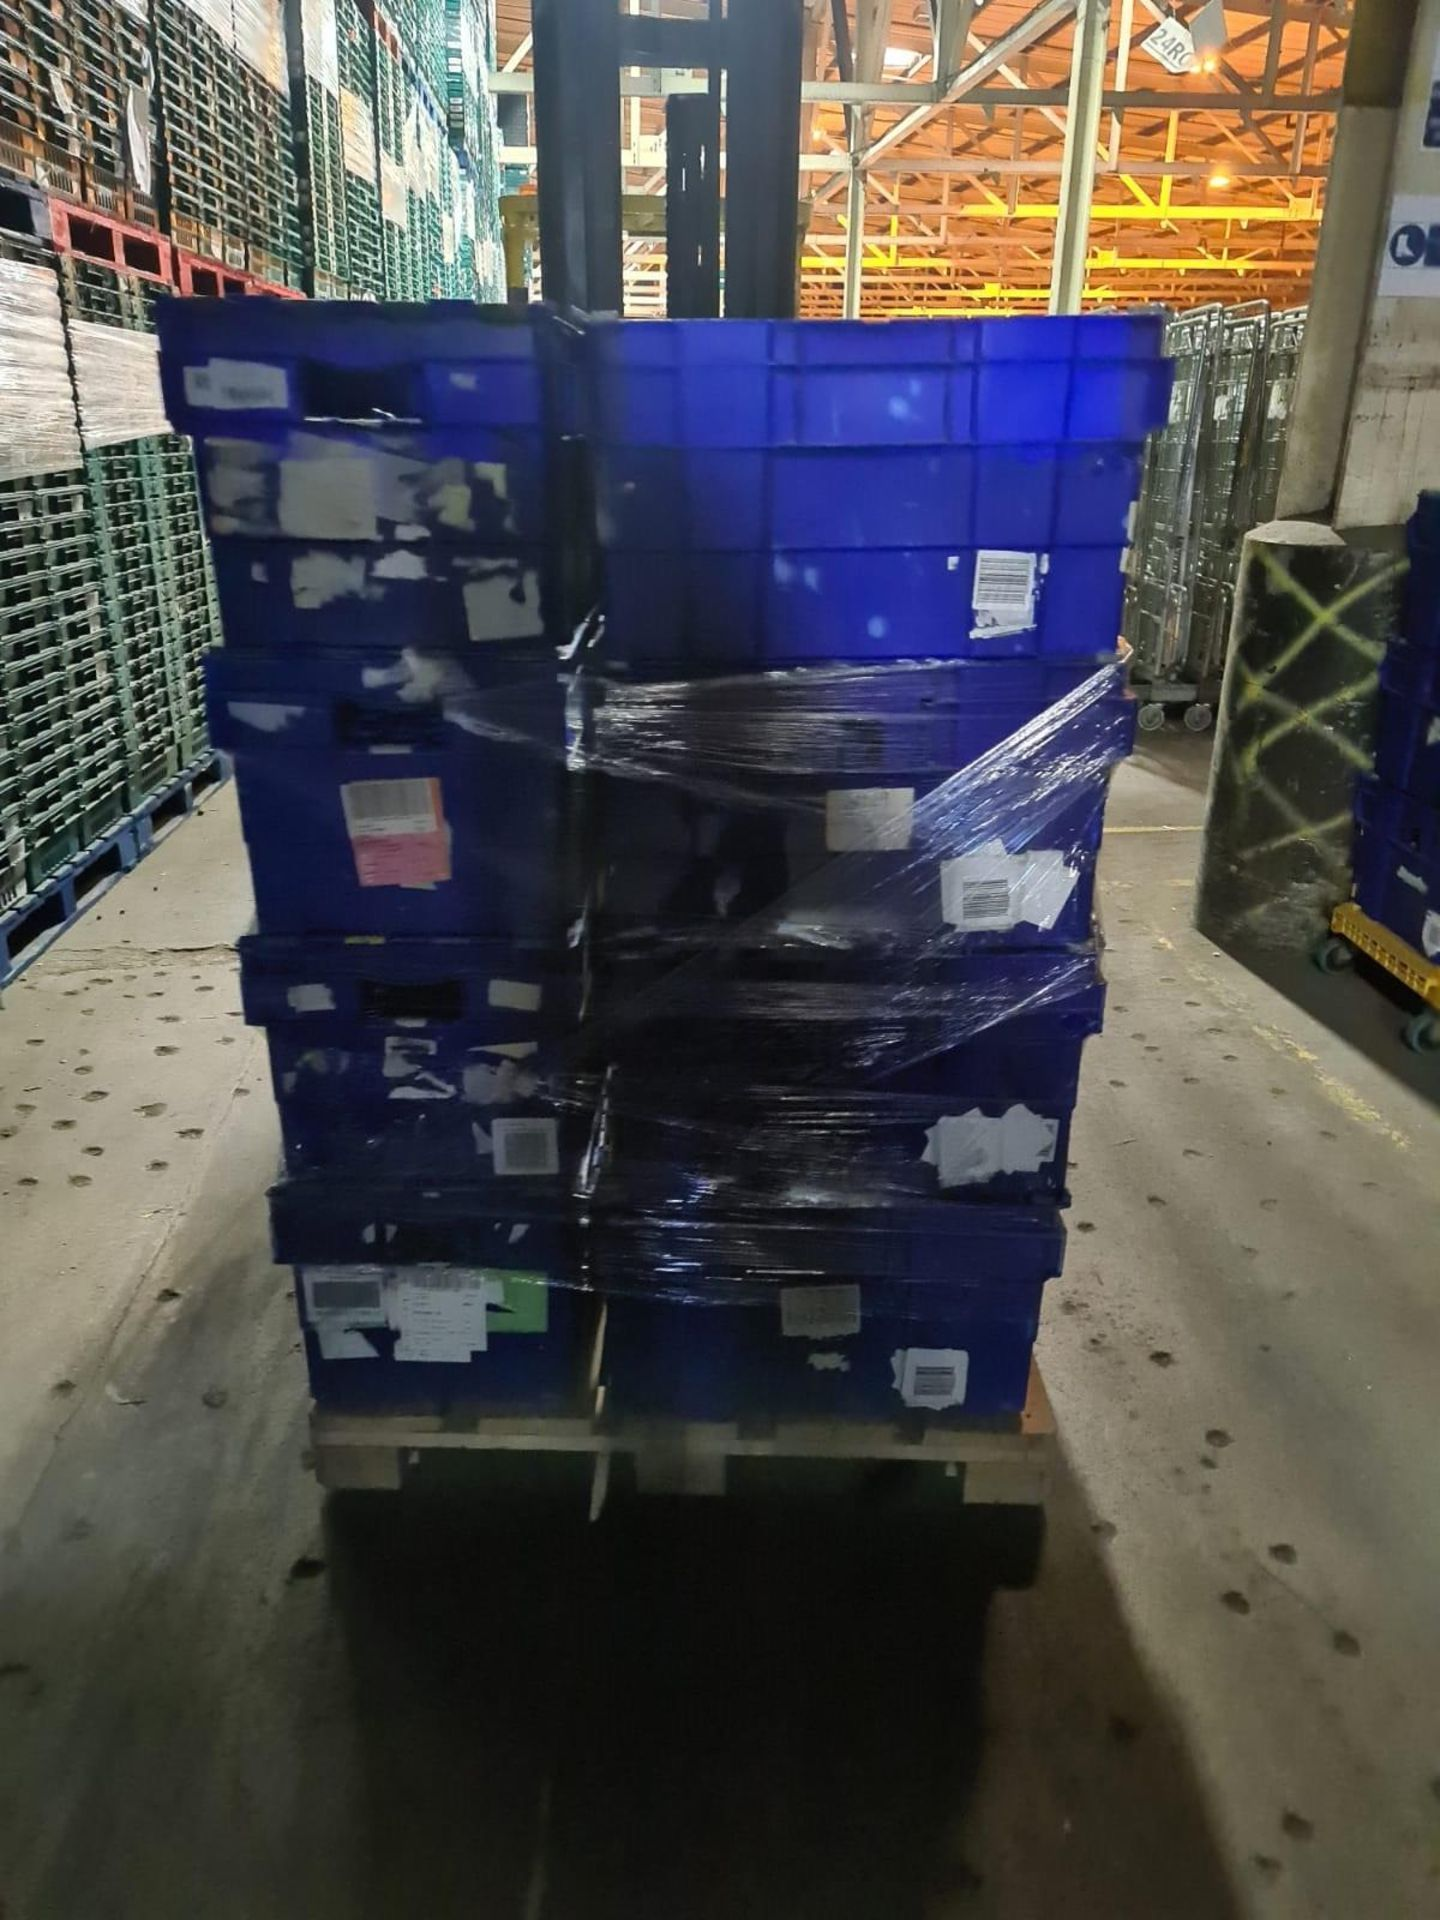 Pallet of 30 x used Blue Solid industrial storage containers/tote boxes from M&S. - Image 2 of 3